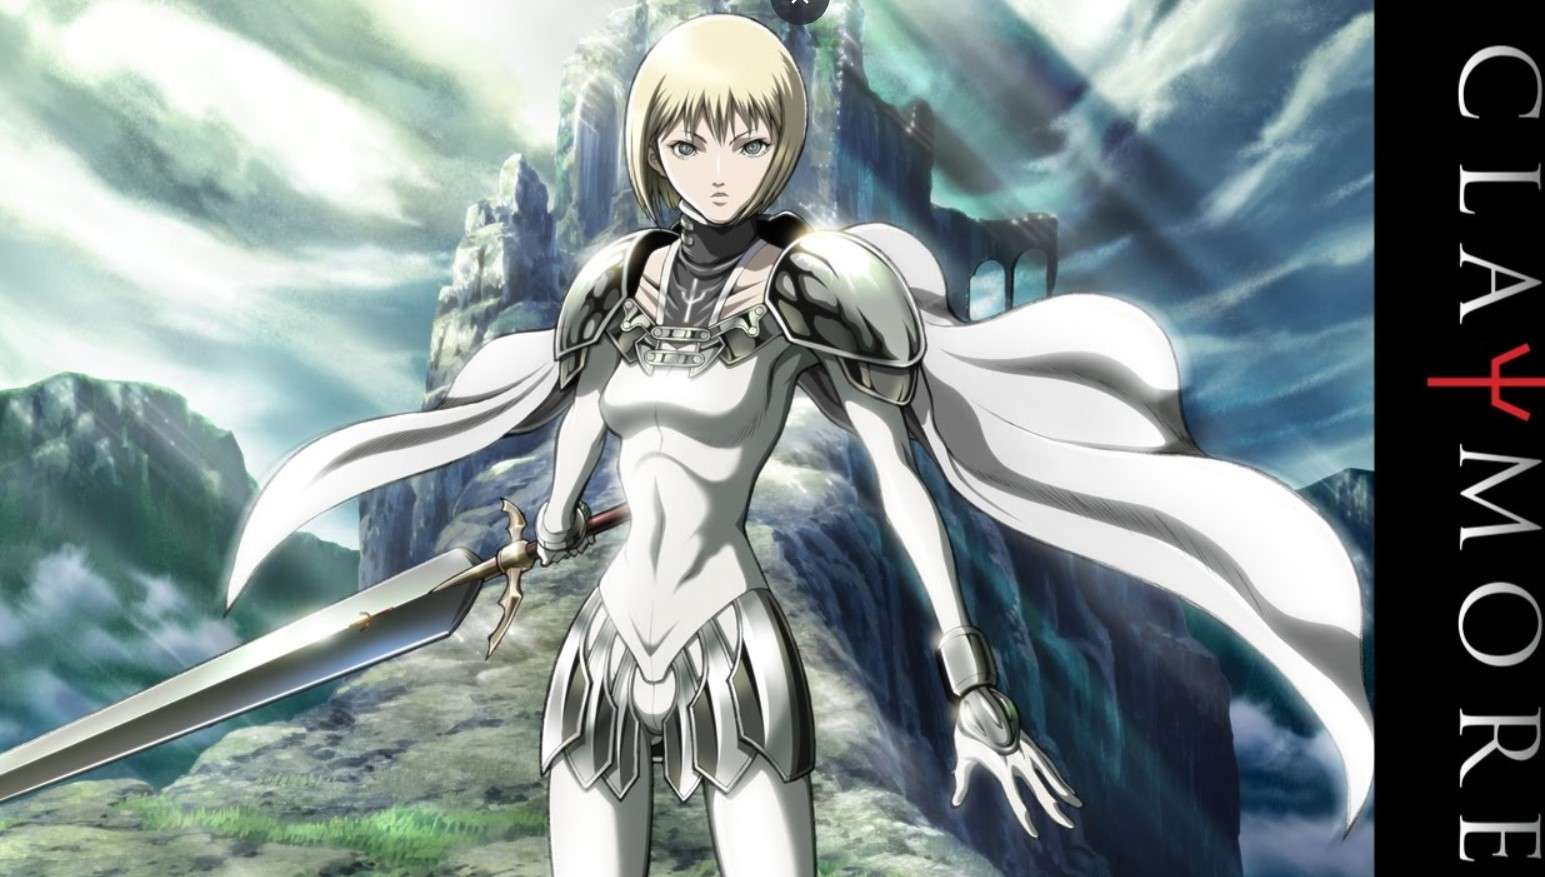 Claymore- anime like attack on titan